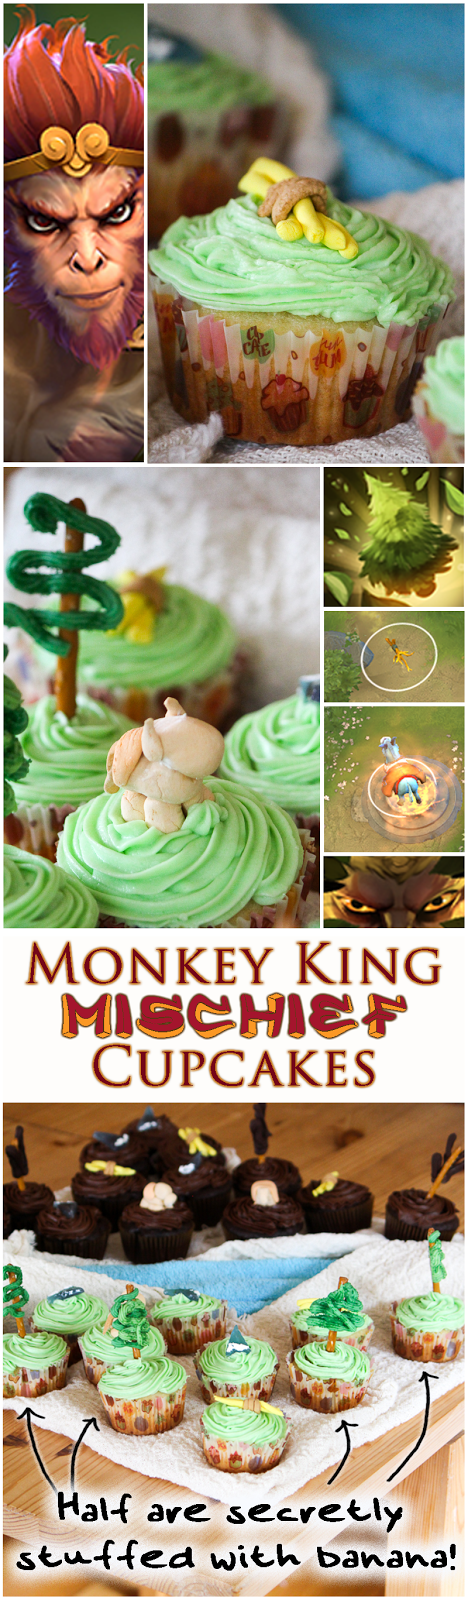 Dota 2 Cupcakes! Monkey King is hiding somewhere... Try figure out which cupcakes are stuffed with banana ganache! Delicious Mischief.